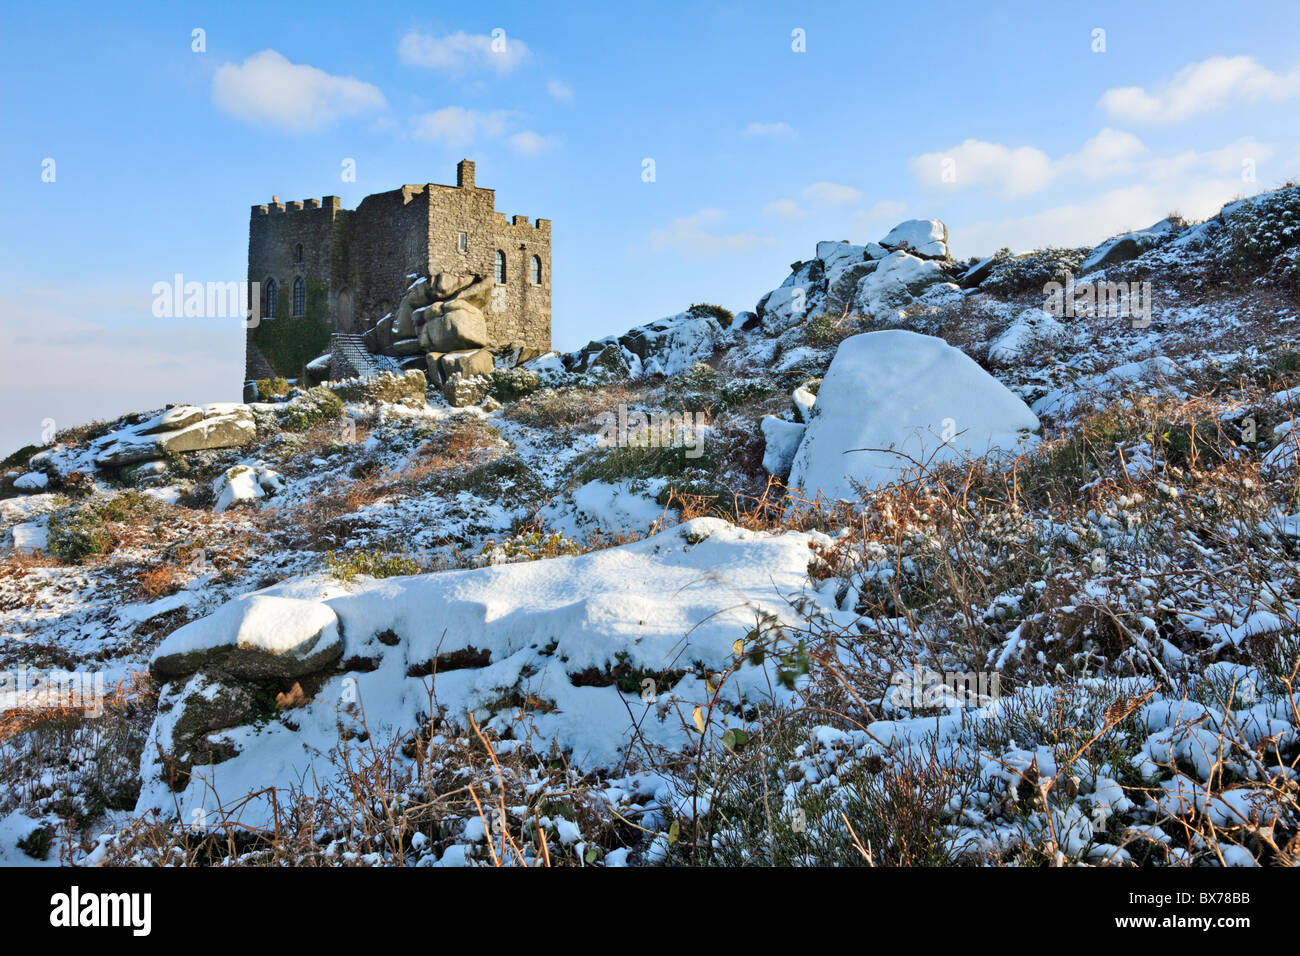 Carn Brea Castle / Restaurant captured after a heavy snow fall - Stock Image